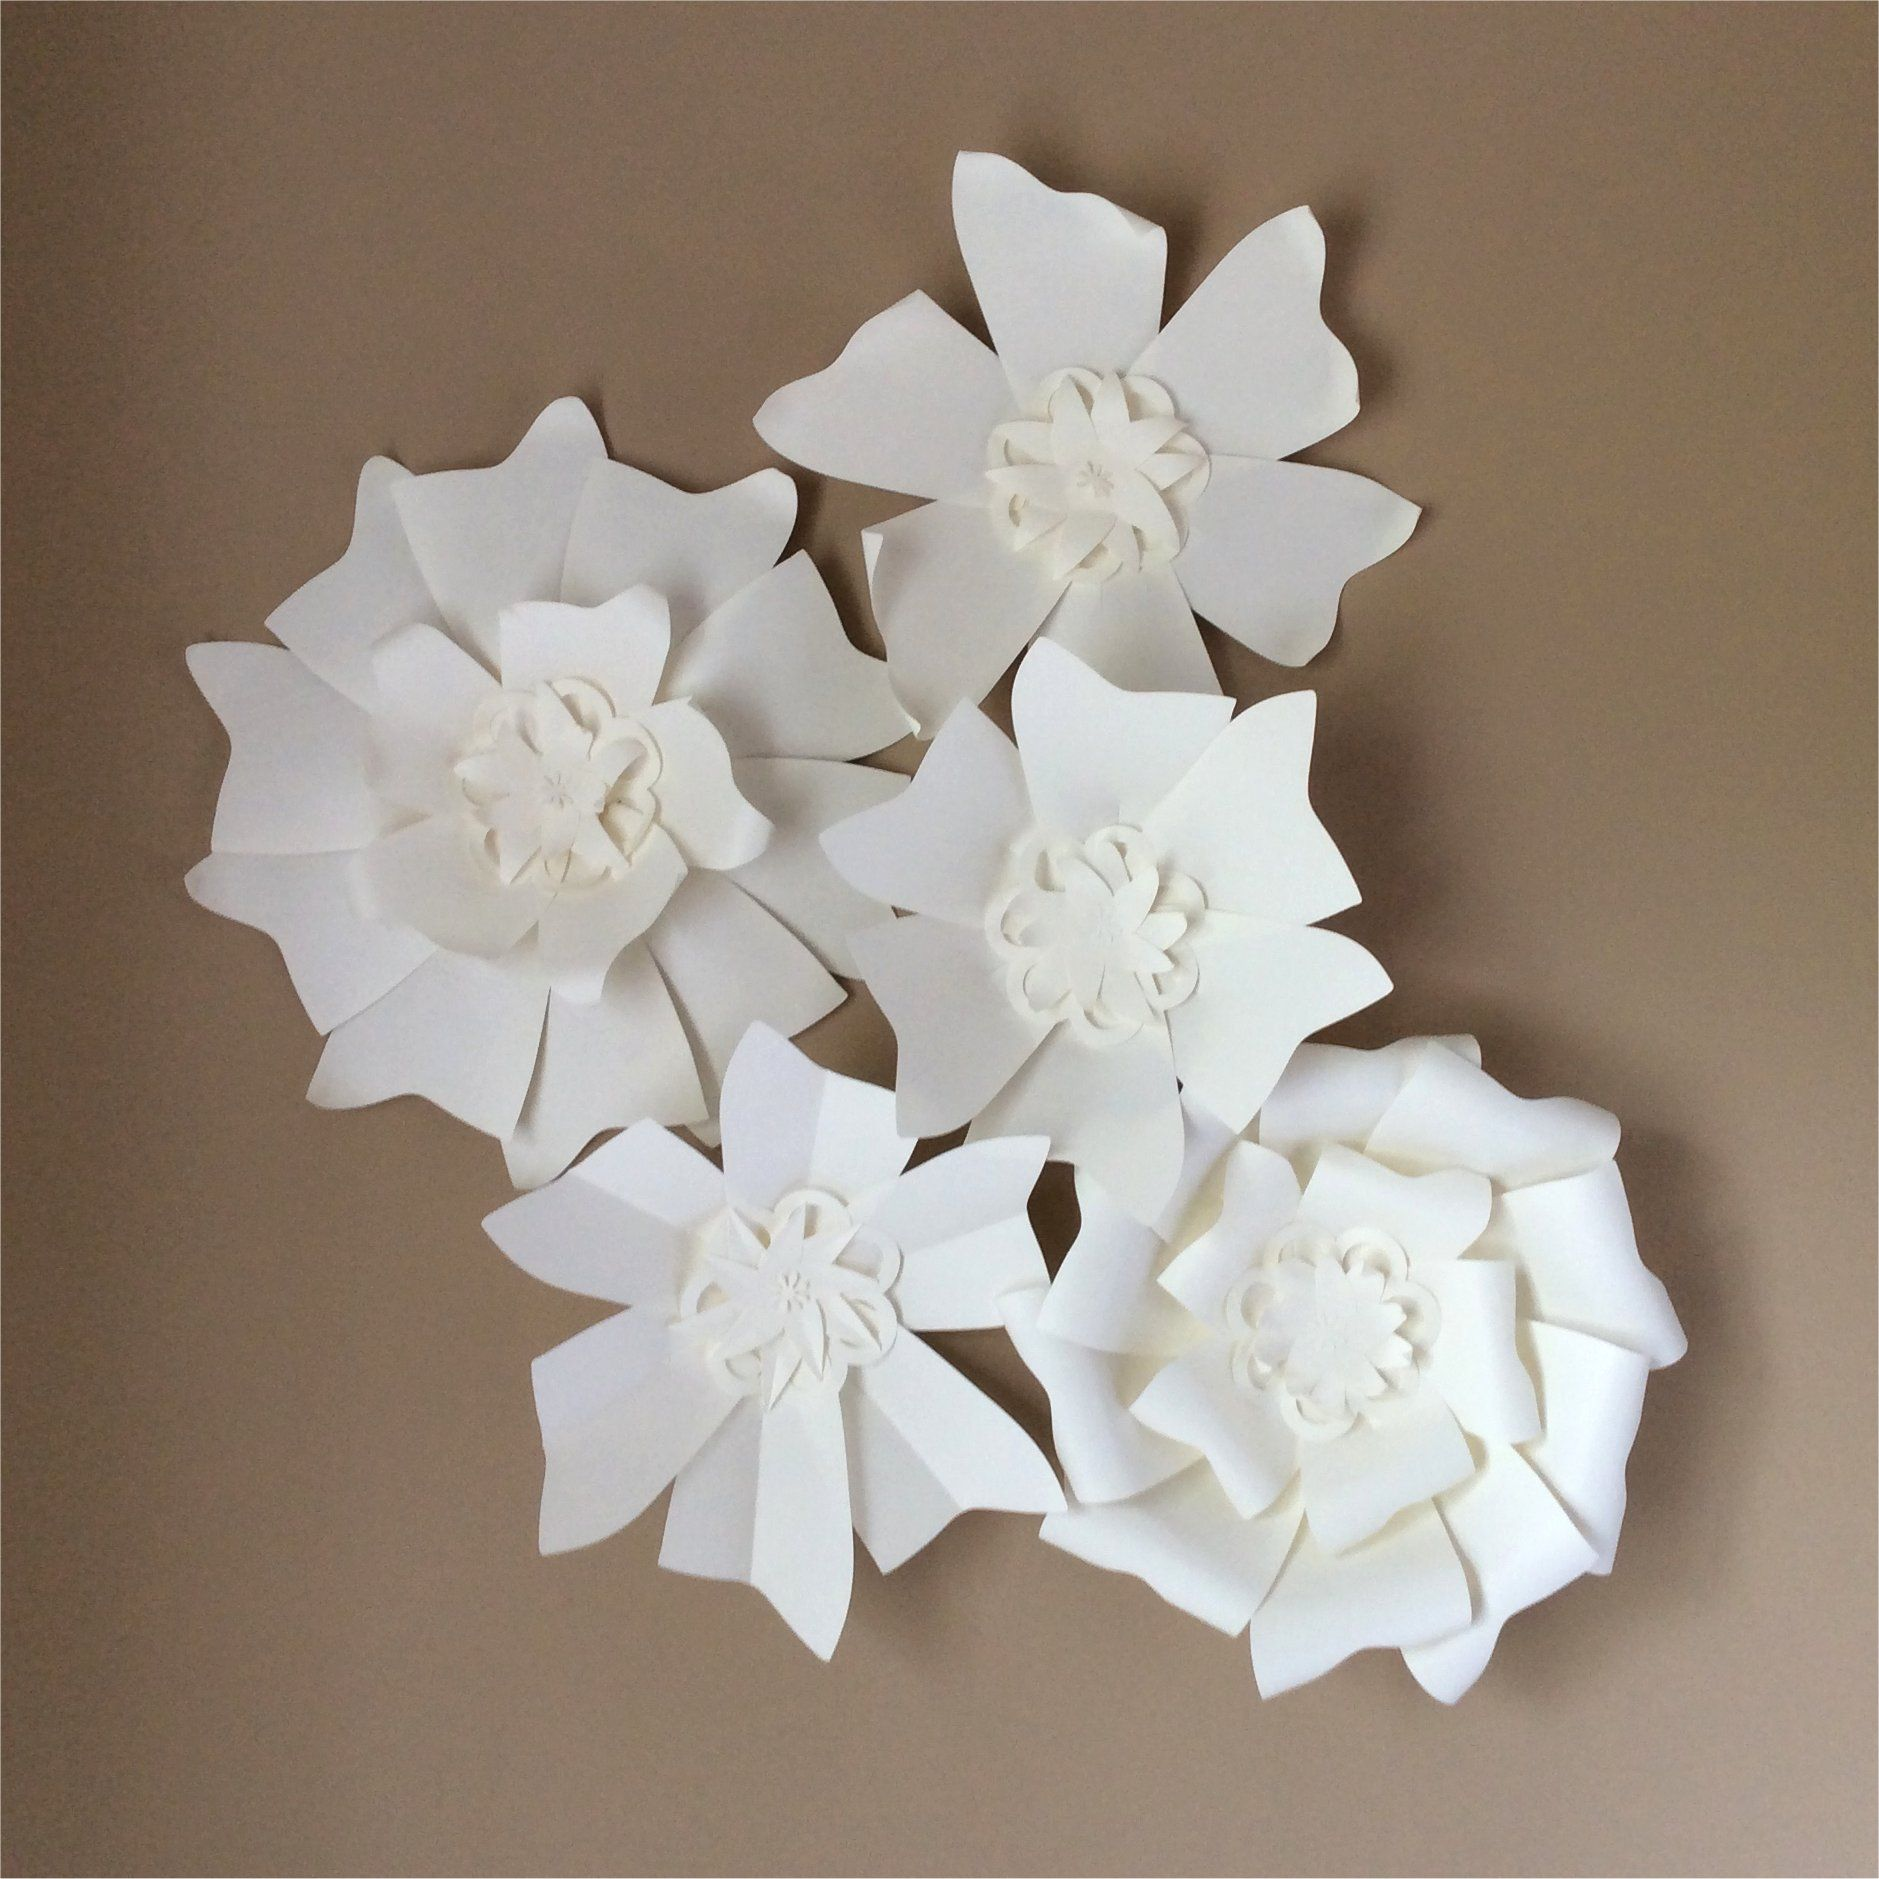 Pinwheel Big Paper Flower 5 Set Of Kits With 30cm Base Flower